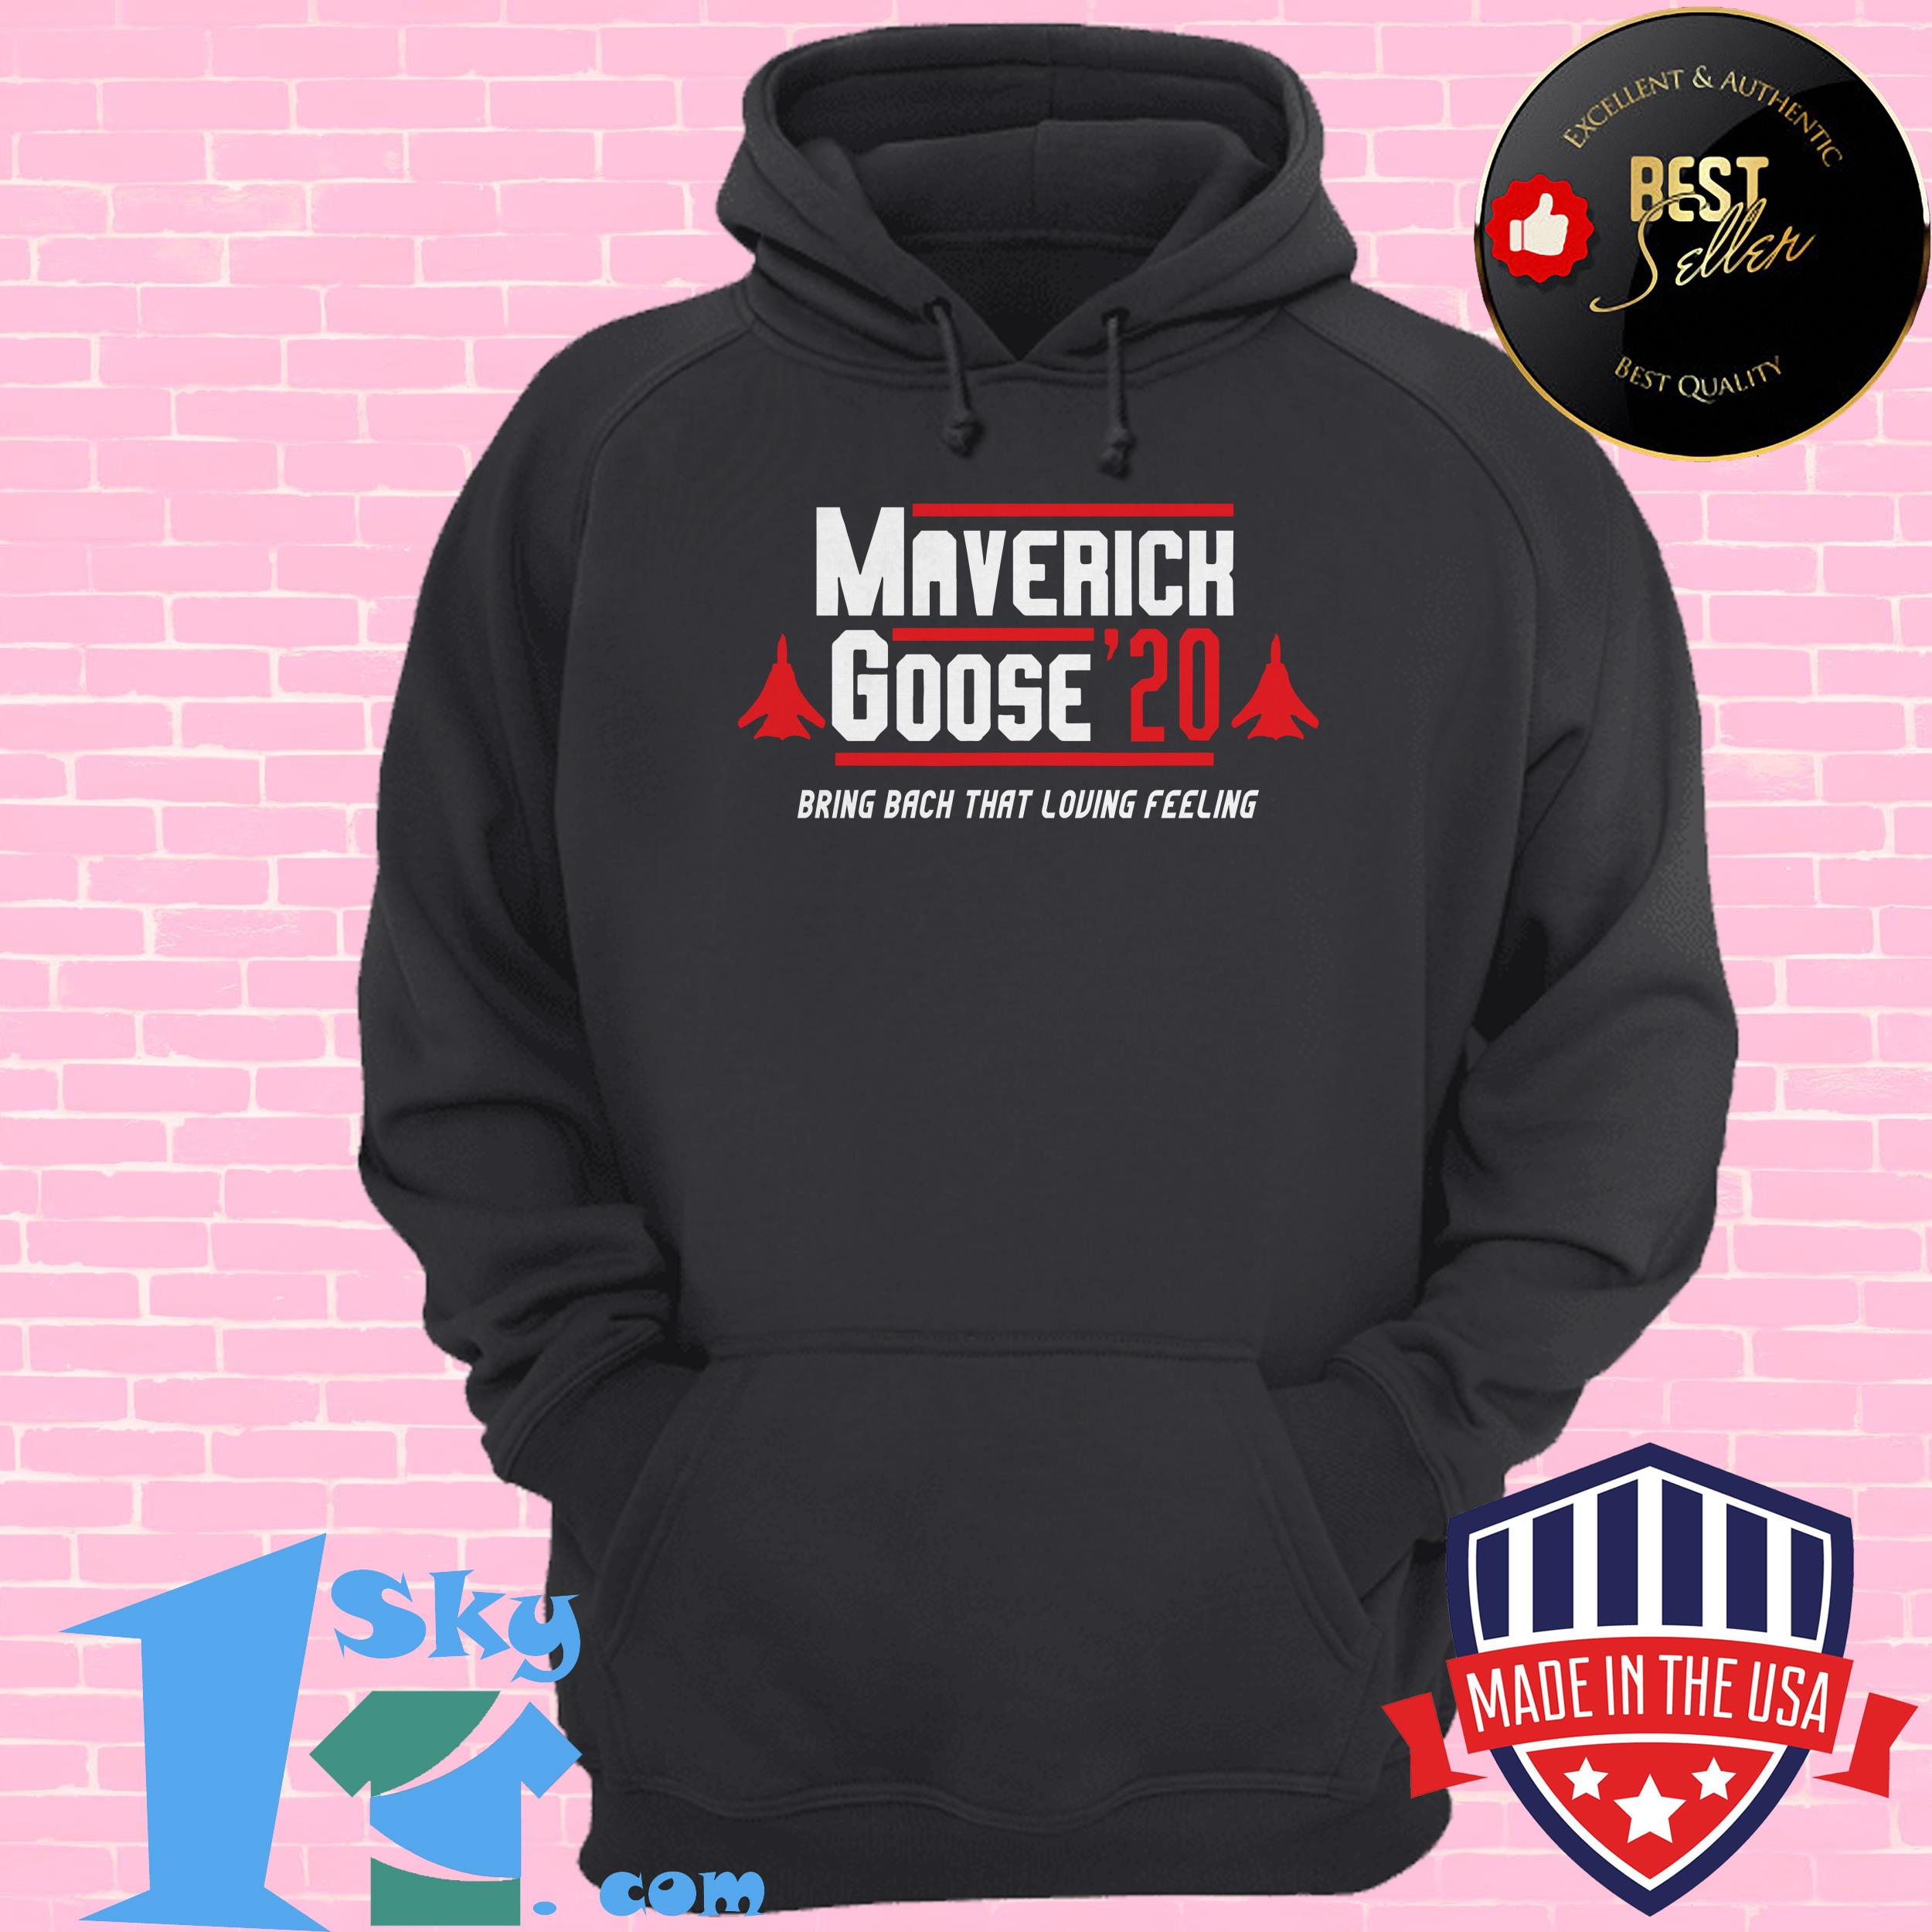 maverick goose 20 bring back that loving feeling hoodie 1 - Maverick Goose 20 Bring Back That Loving Feeling Shirt